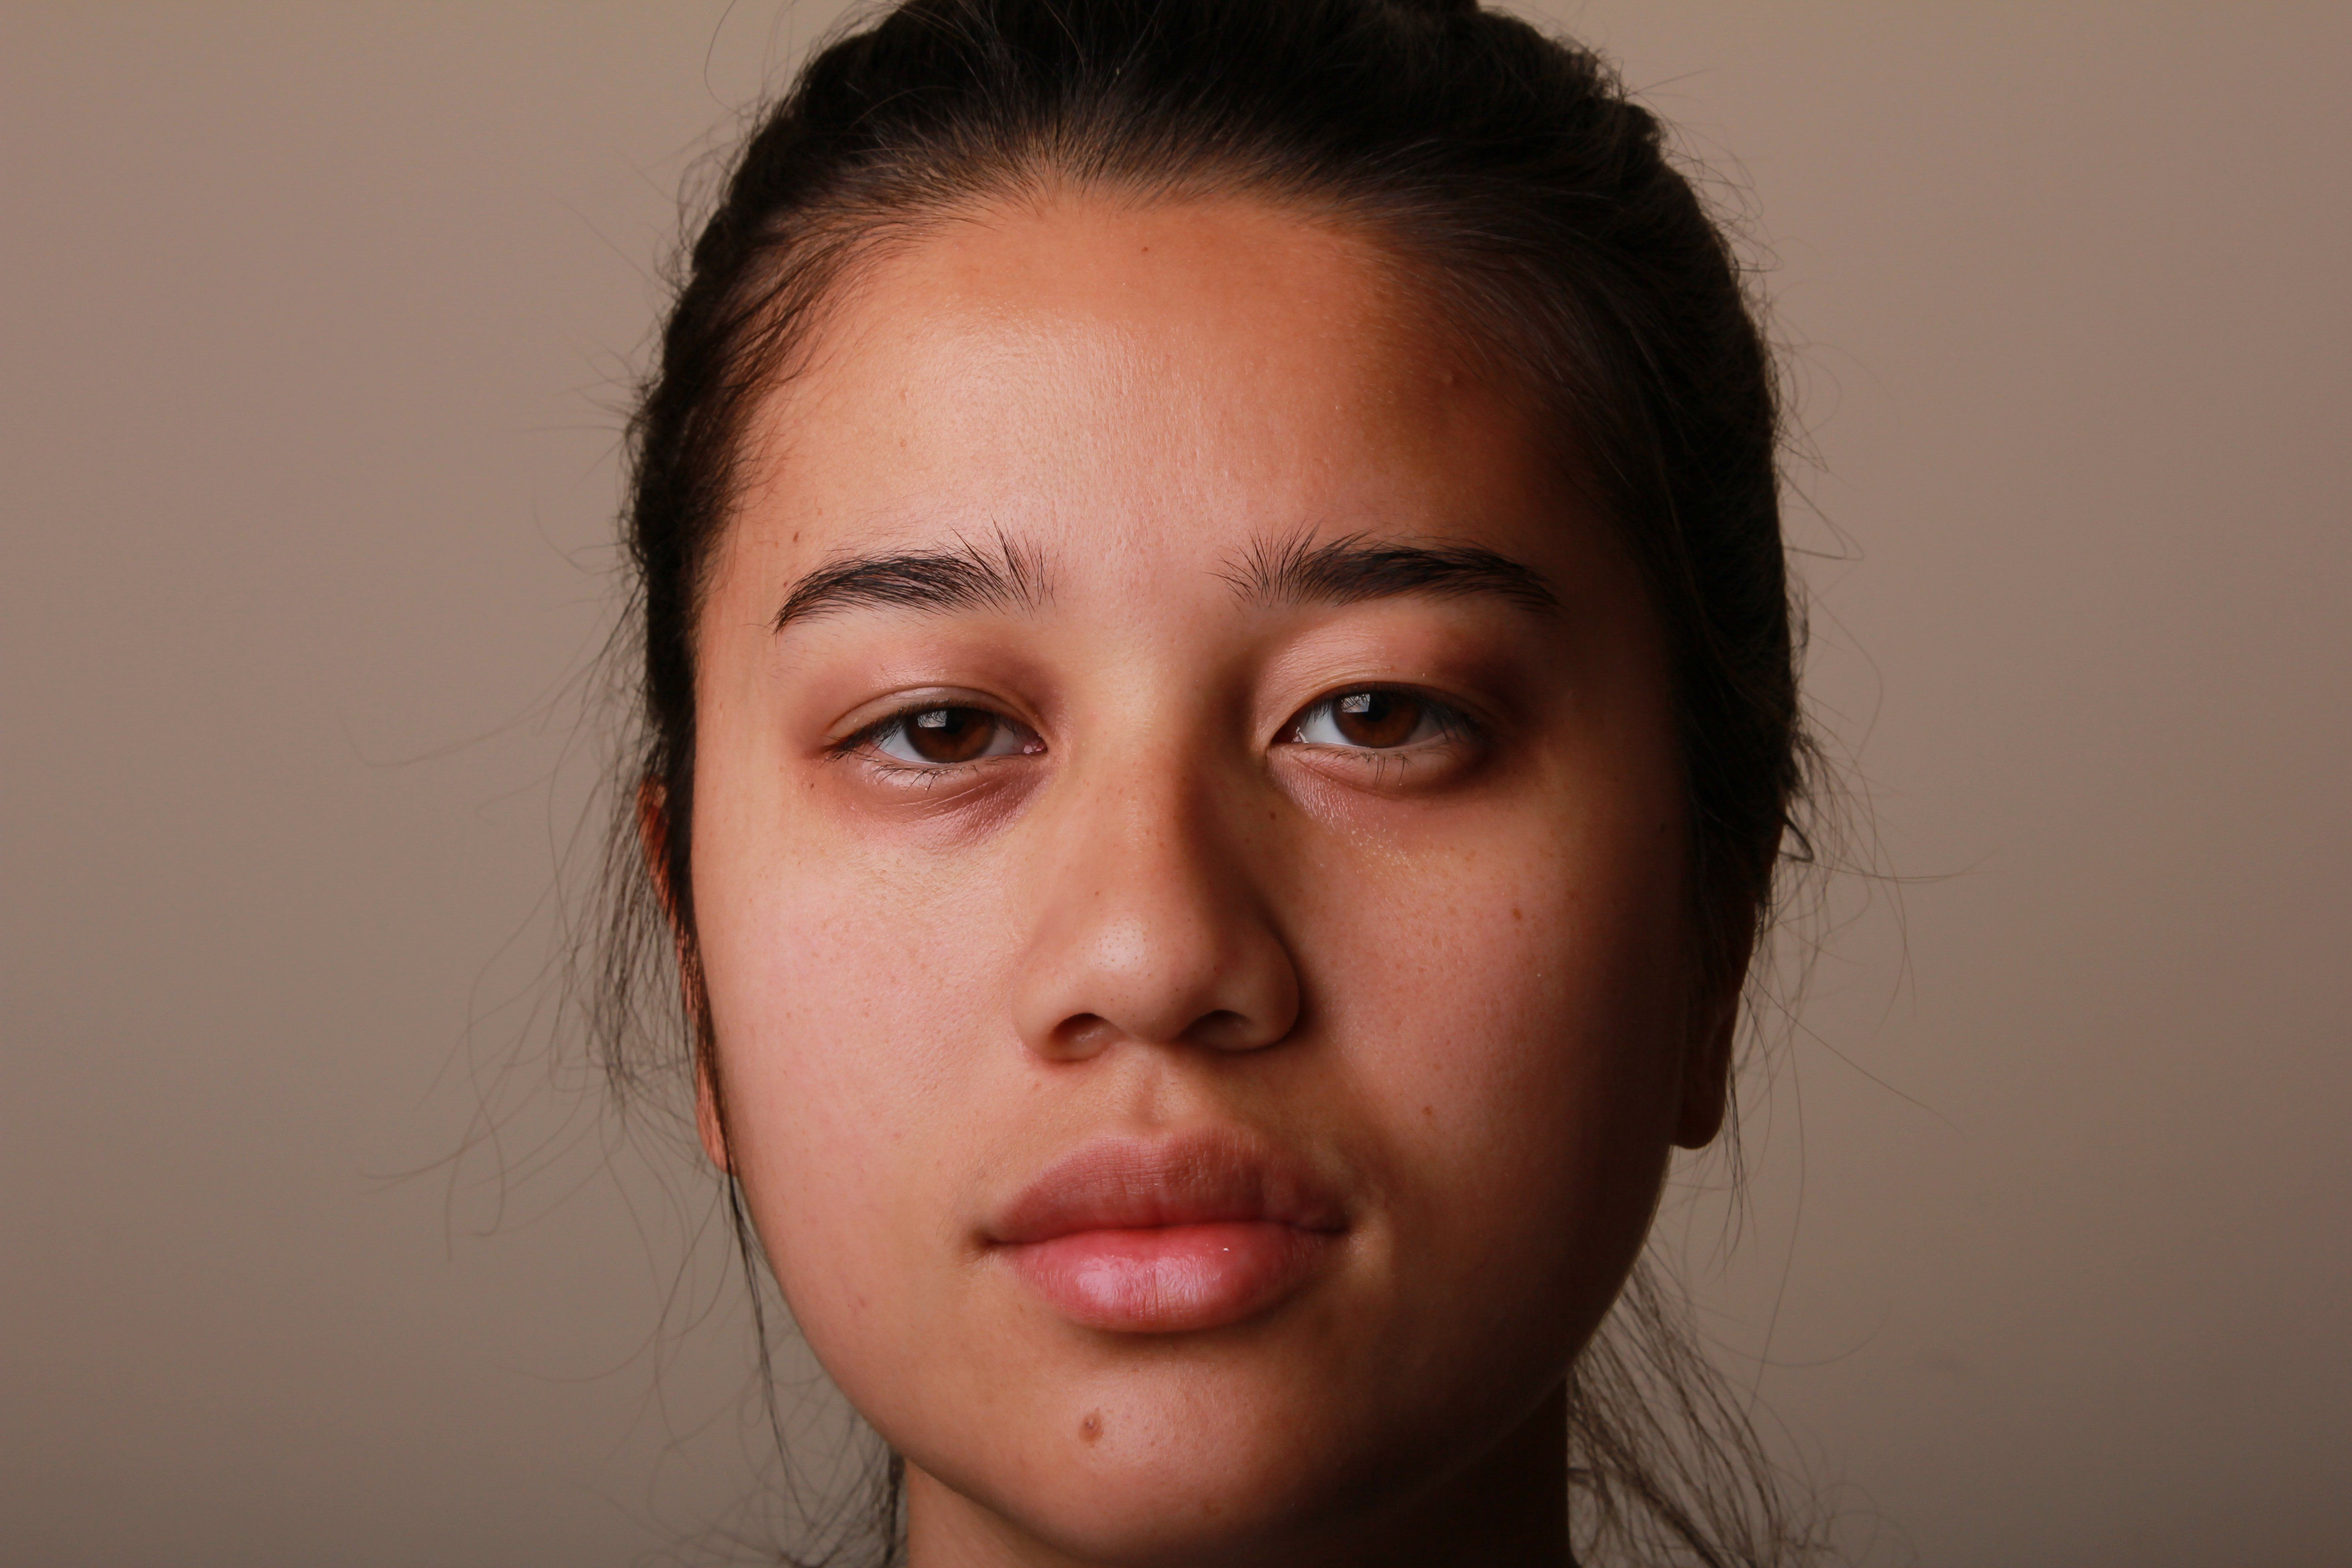 Absolute Z. reccomend Causes of facial puffiness